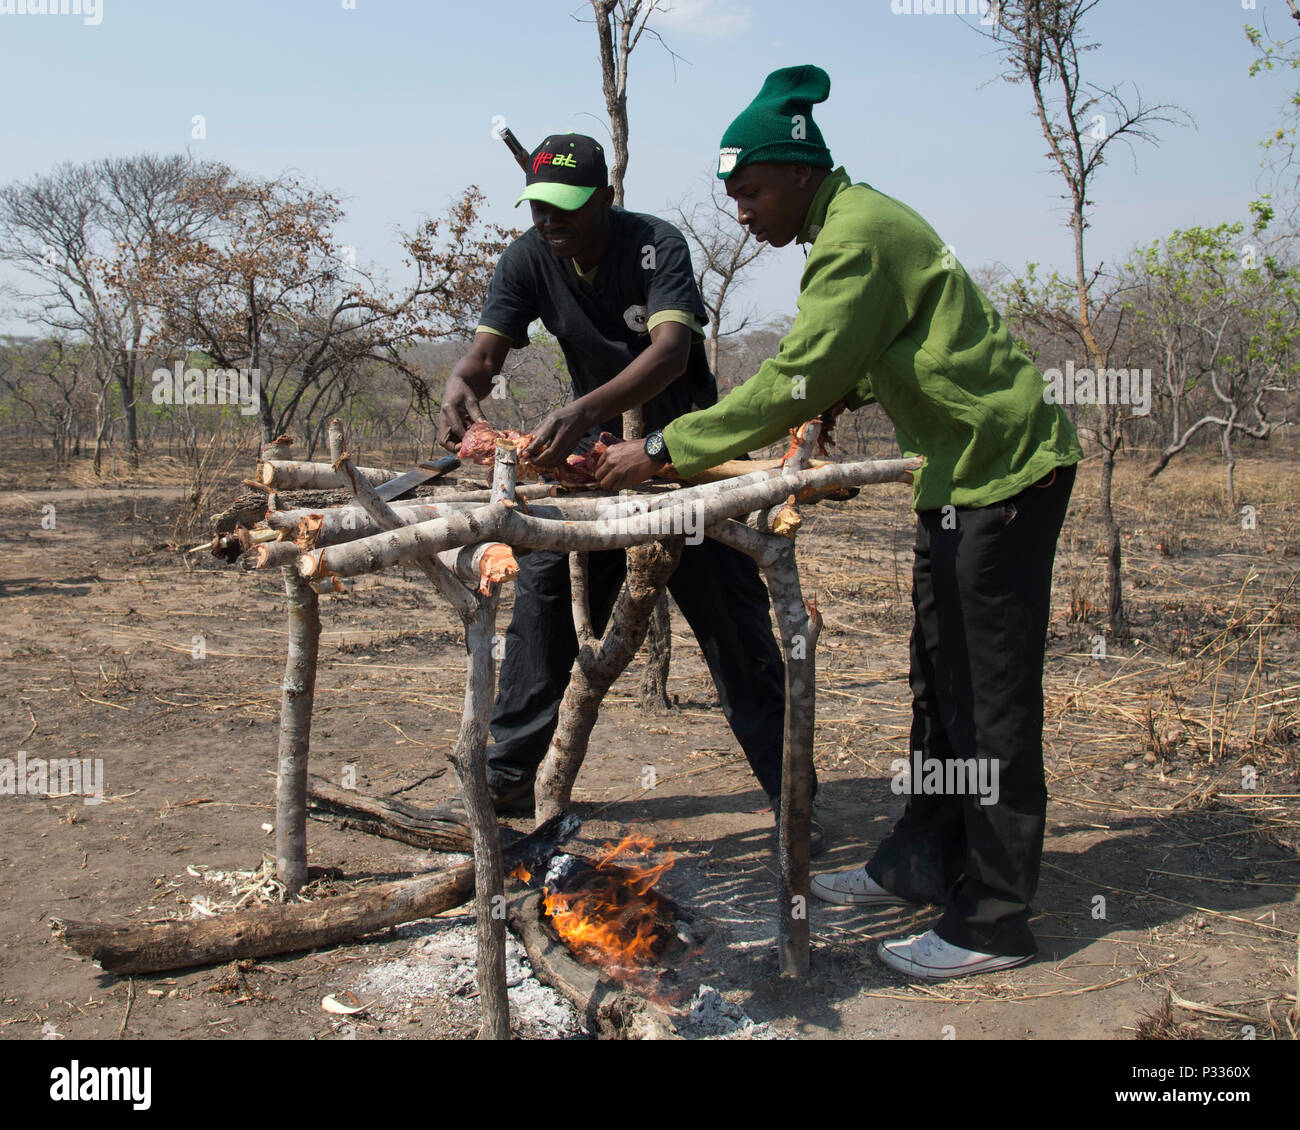 Tanzania park and game reserve rangers, acting as poachers, cook meat from a game reserve animal as part of demonstration August 24, 2016, at Rungwa Game Reserve, Tanzania. The scenario was based around rangers locating a camp of poachers who illegally killed an elephant to harvest its ivory. Rangers recently trained with members of the 403rd Civil Affairs Battalion, a component of Combined Joint Task Force - Horn of Africa, and North Carolina Army National Guard to learn techniques to track and capture poachers. (U.S. Air Force photo by Staff Sgt. Eric Summers Jr.) - Stock Image